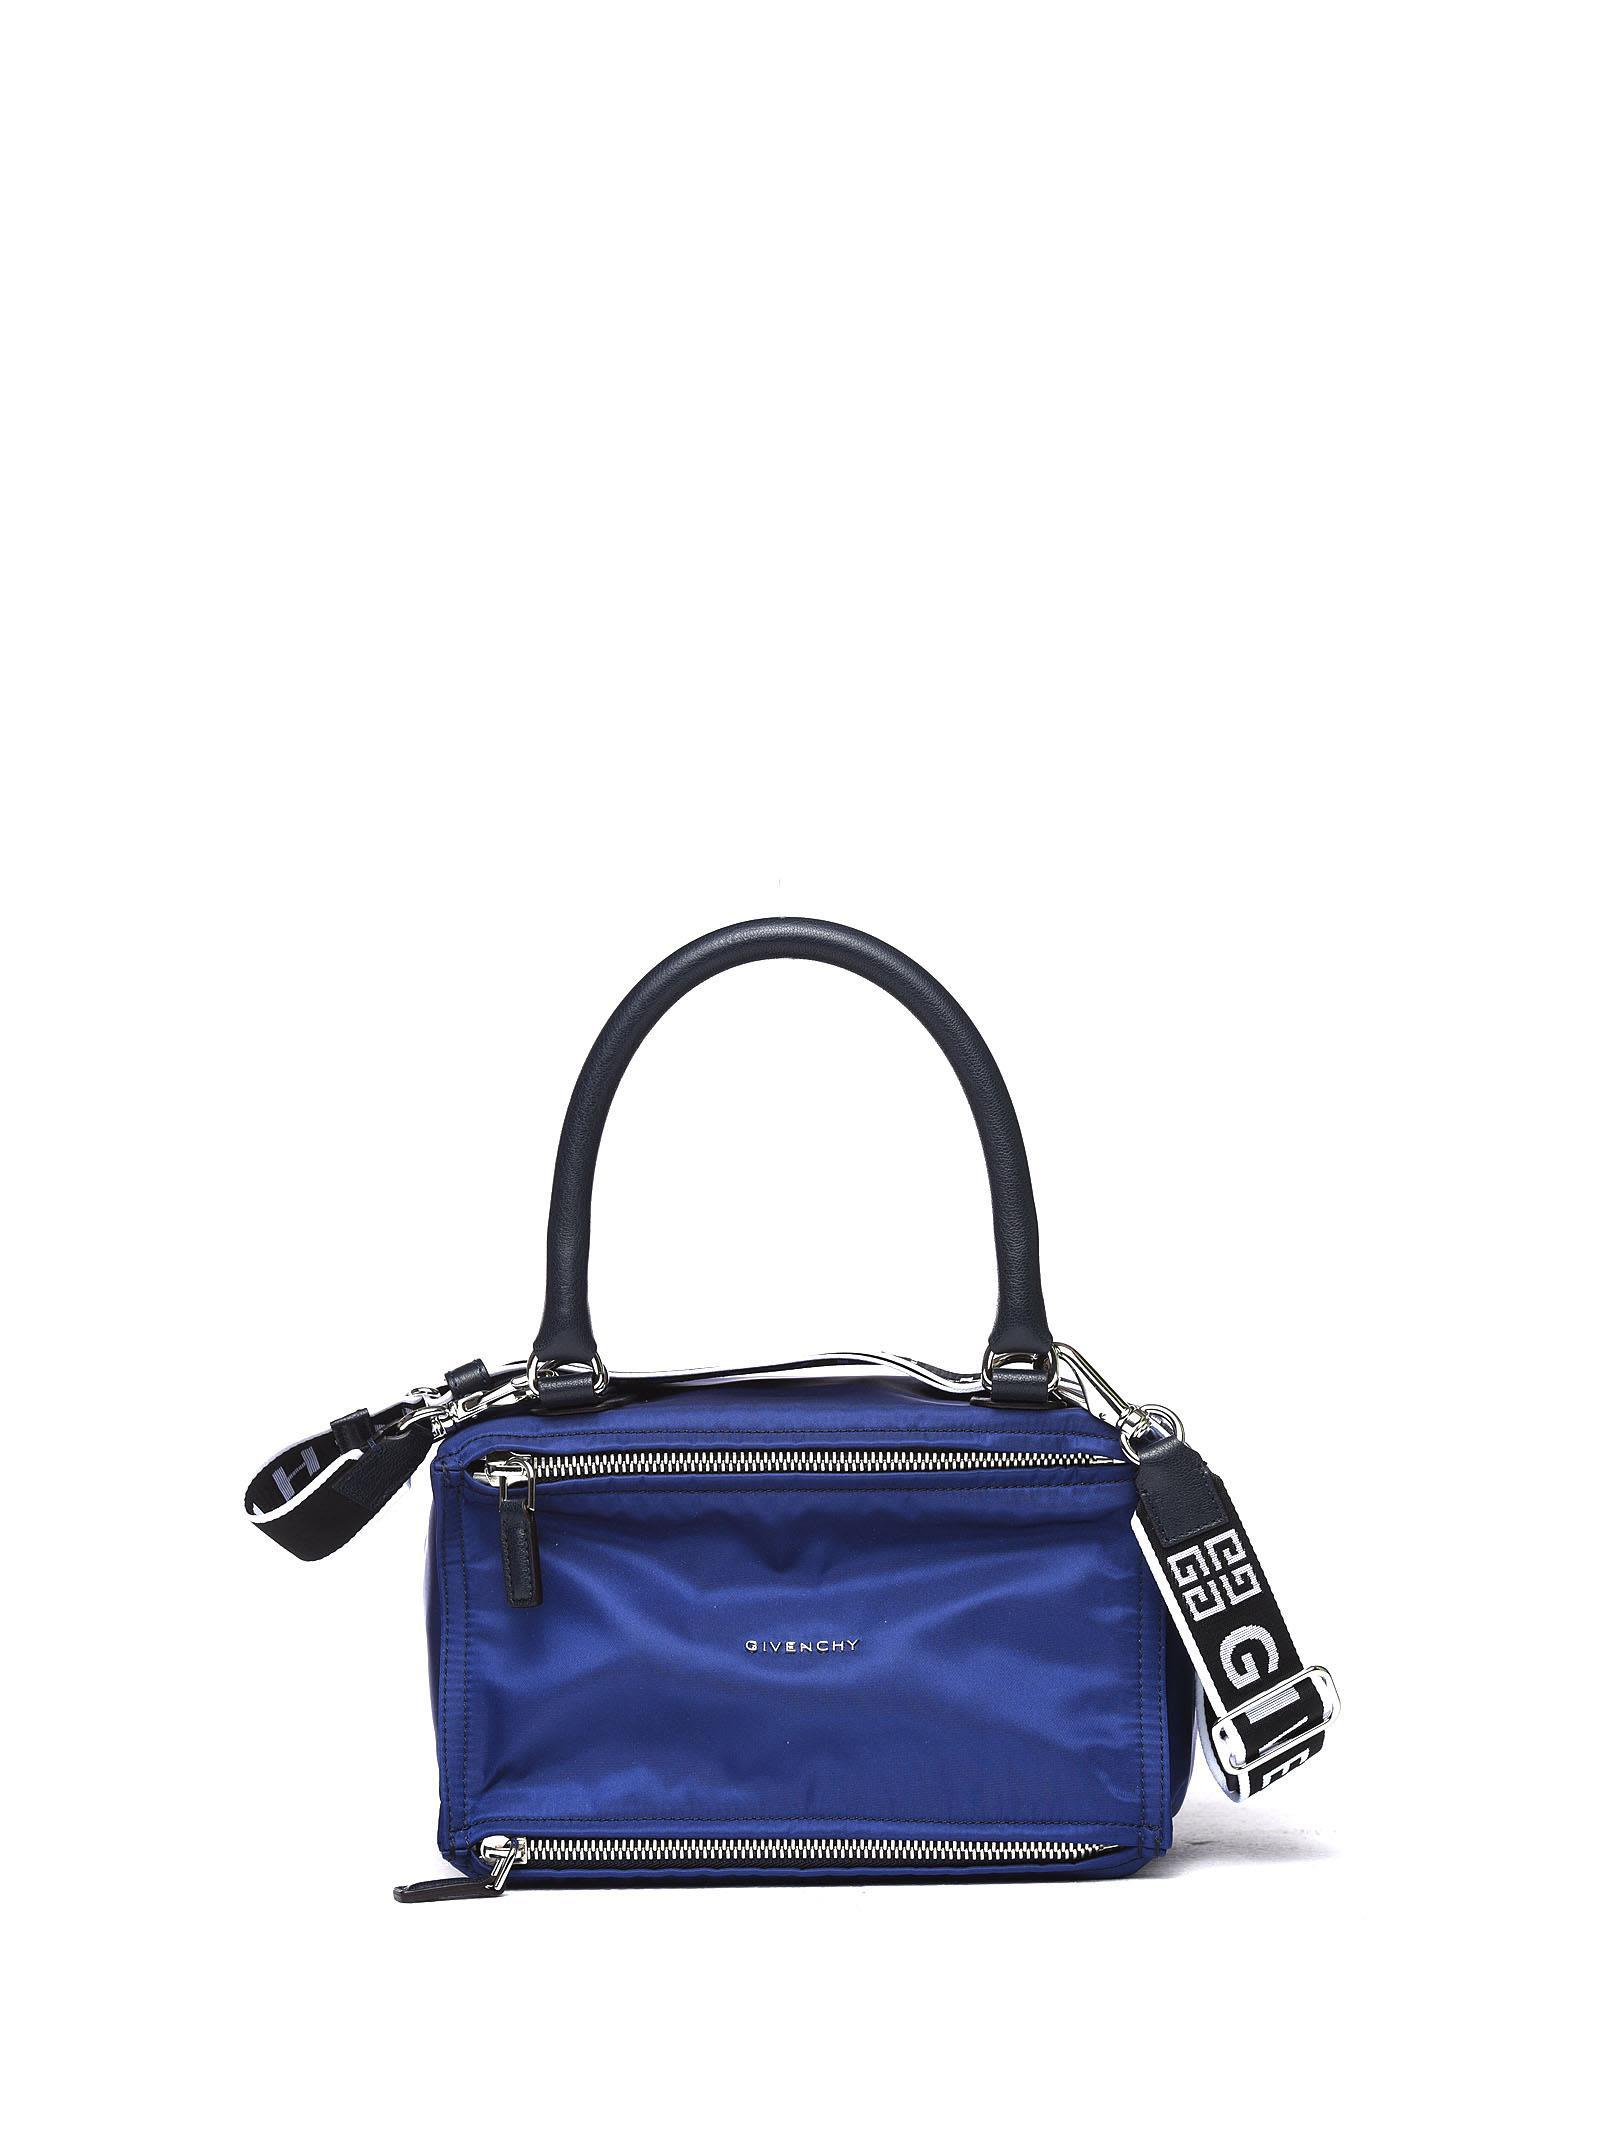 0d2782c34c Givenchy Pandora Small 4G Handle Bag In Blue Nylon And Leather In Dark Blue